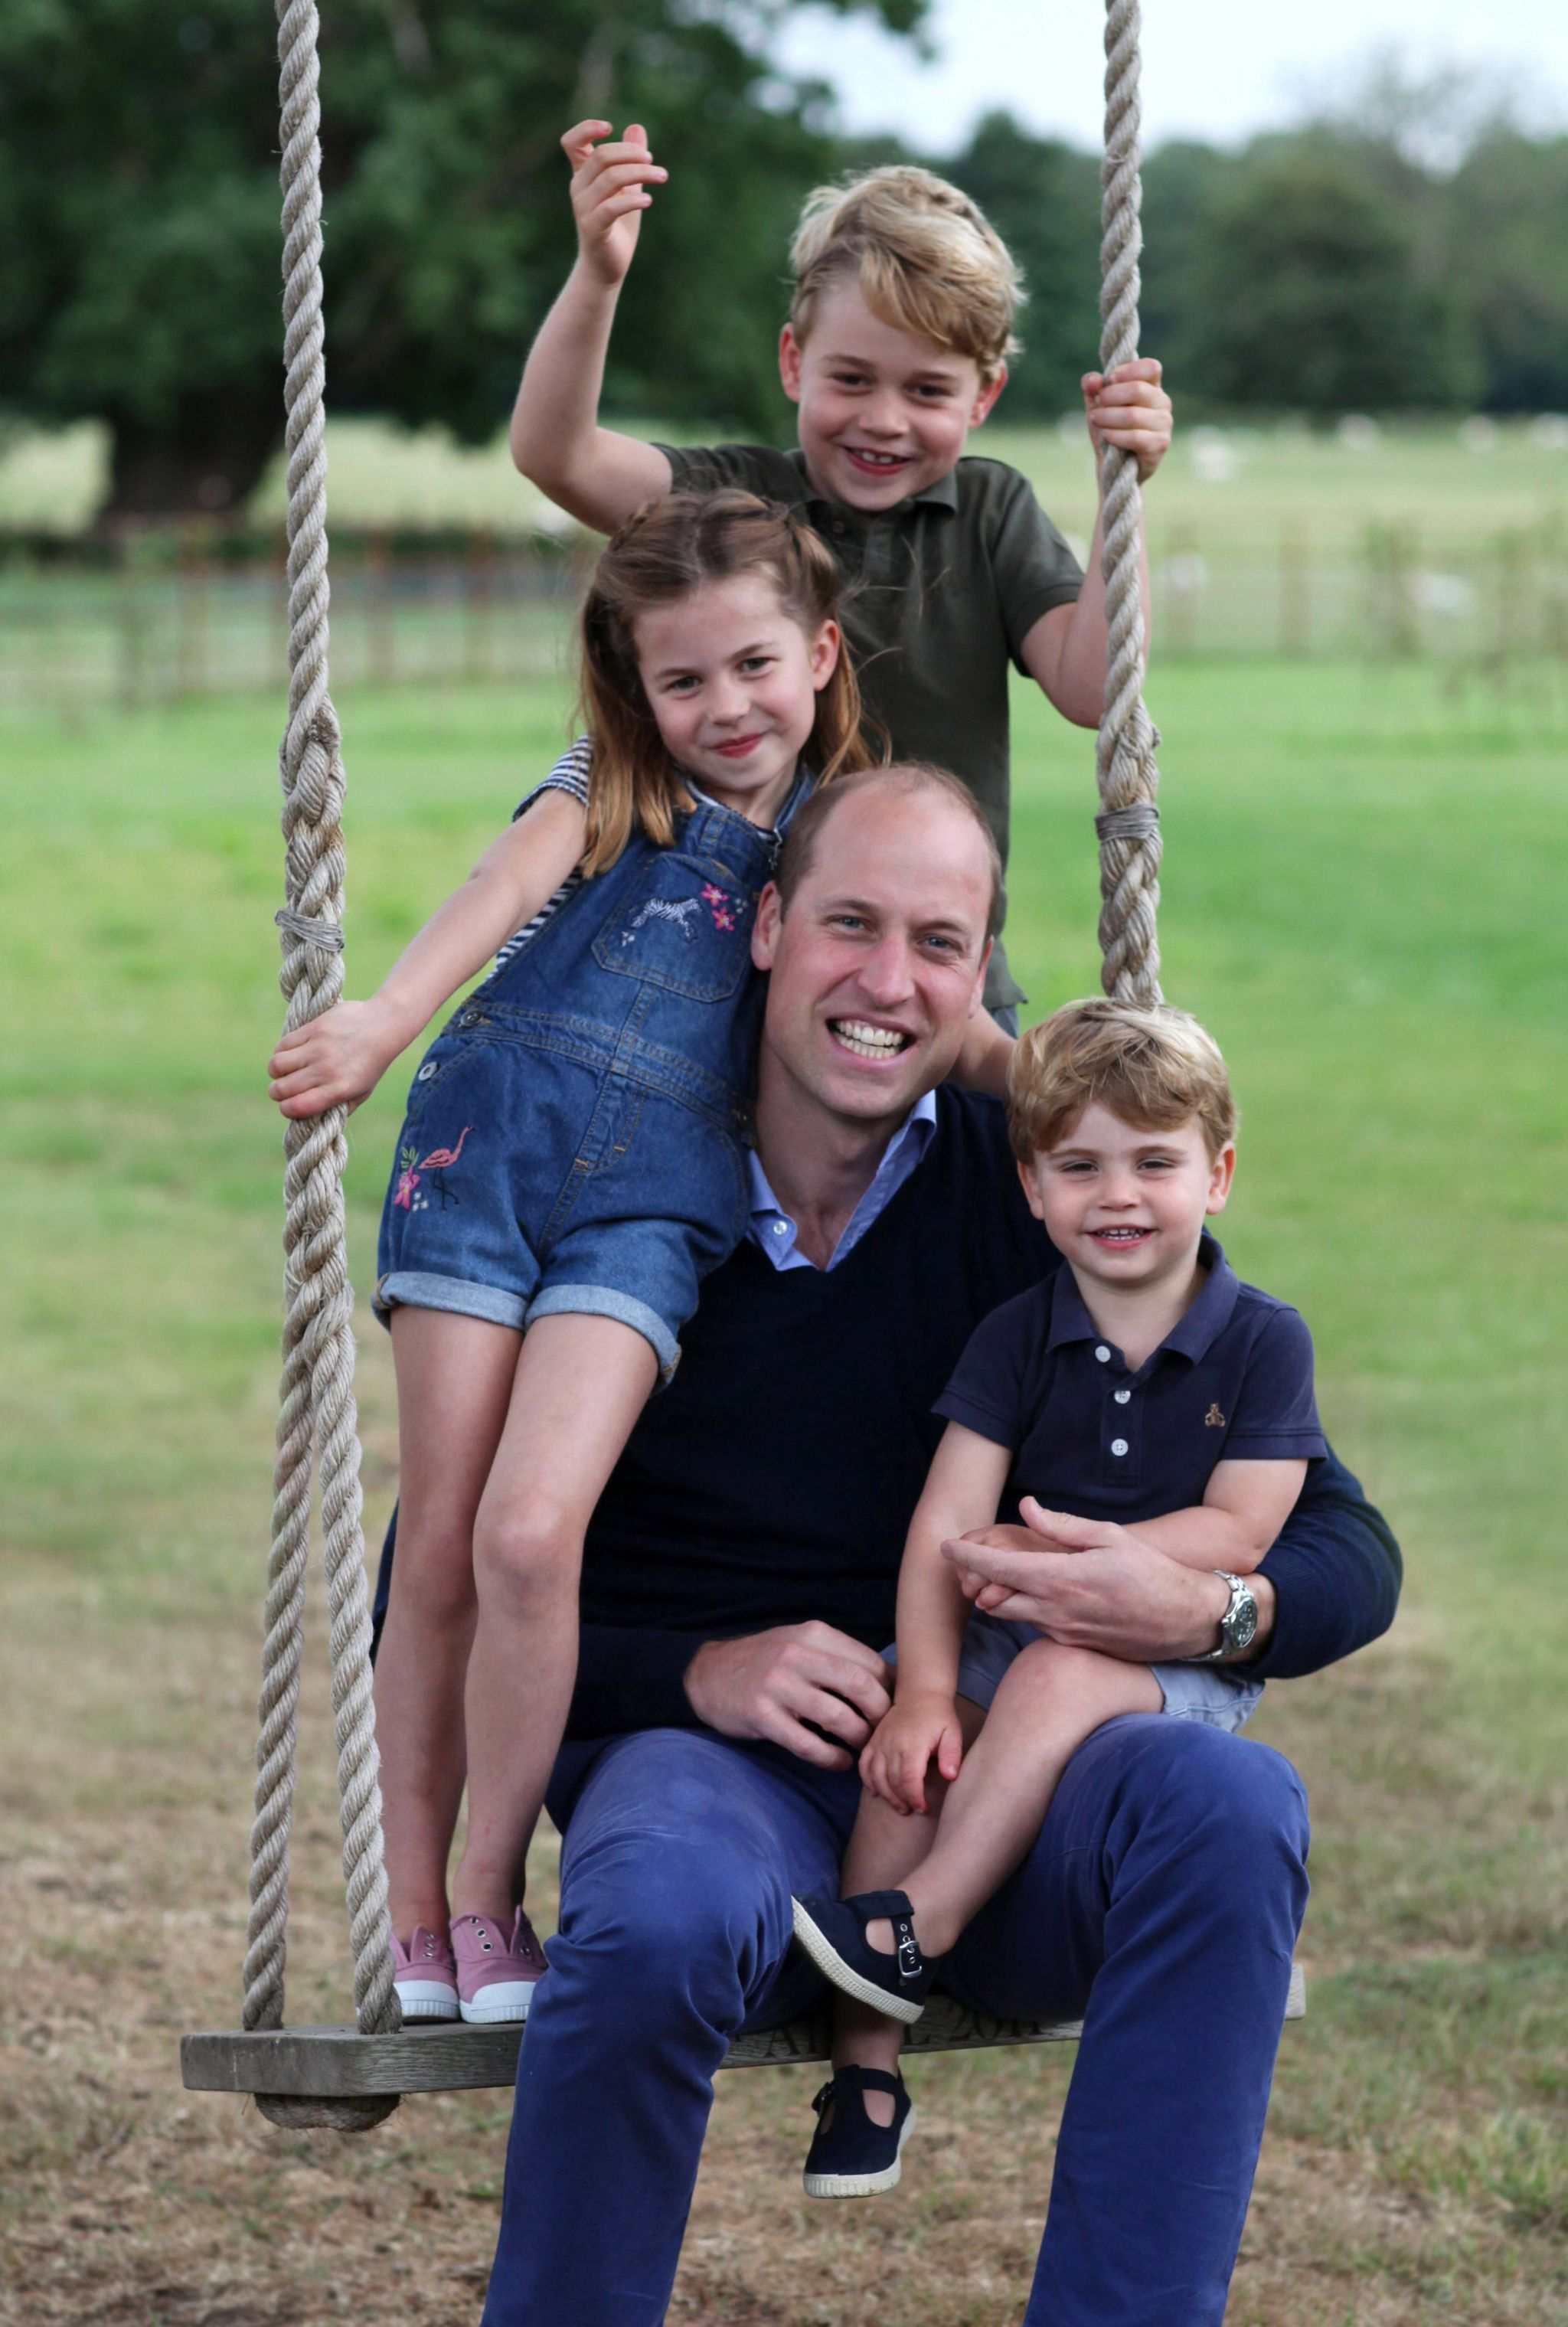 The Duke of Cambridge poses on a swing with Prince George, Princess Charlotte and Prince Louis